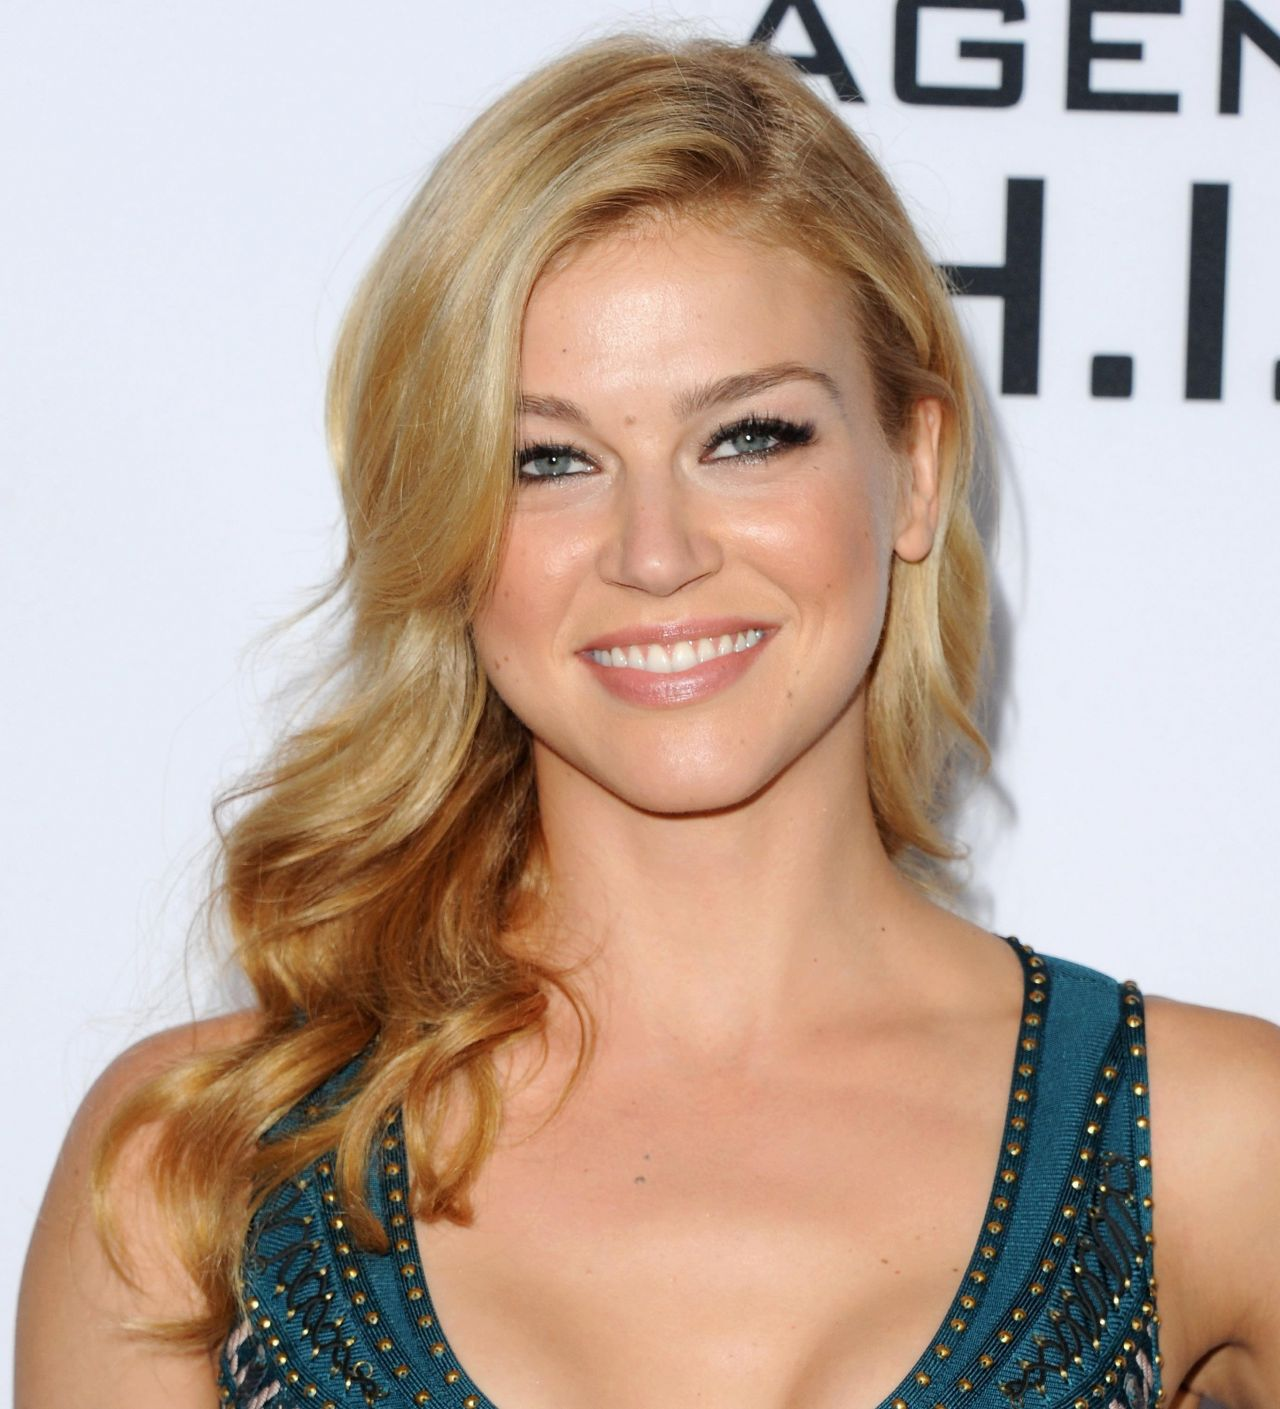 adrianne palicki fansiteadrianne palicki gif, adrianne palicki wonder woman, adrianne palicki vk, adrianne palicki fansite, adrianne palicki 2016, adrianne palicki twitter, adrianne palicki gallery, adrianne palicki wiki, adrianne palicki imdb, adrianne palicki eye colour, adrianne palicki vs, adrianne palicki from dusk till dawn, adrianne palicki ruby rose, adrianne palicki instagram, adrianne palicki gif hunt, adrianne palicki supernatural, adrianne palicki photoshoot, adrianne palicki agents of shield, adrianne palicki gi joe jogging, adrianne palicki filmography